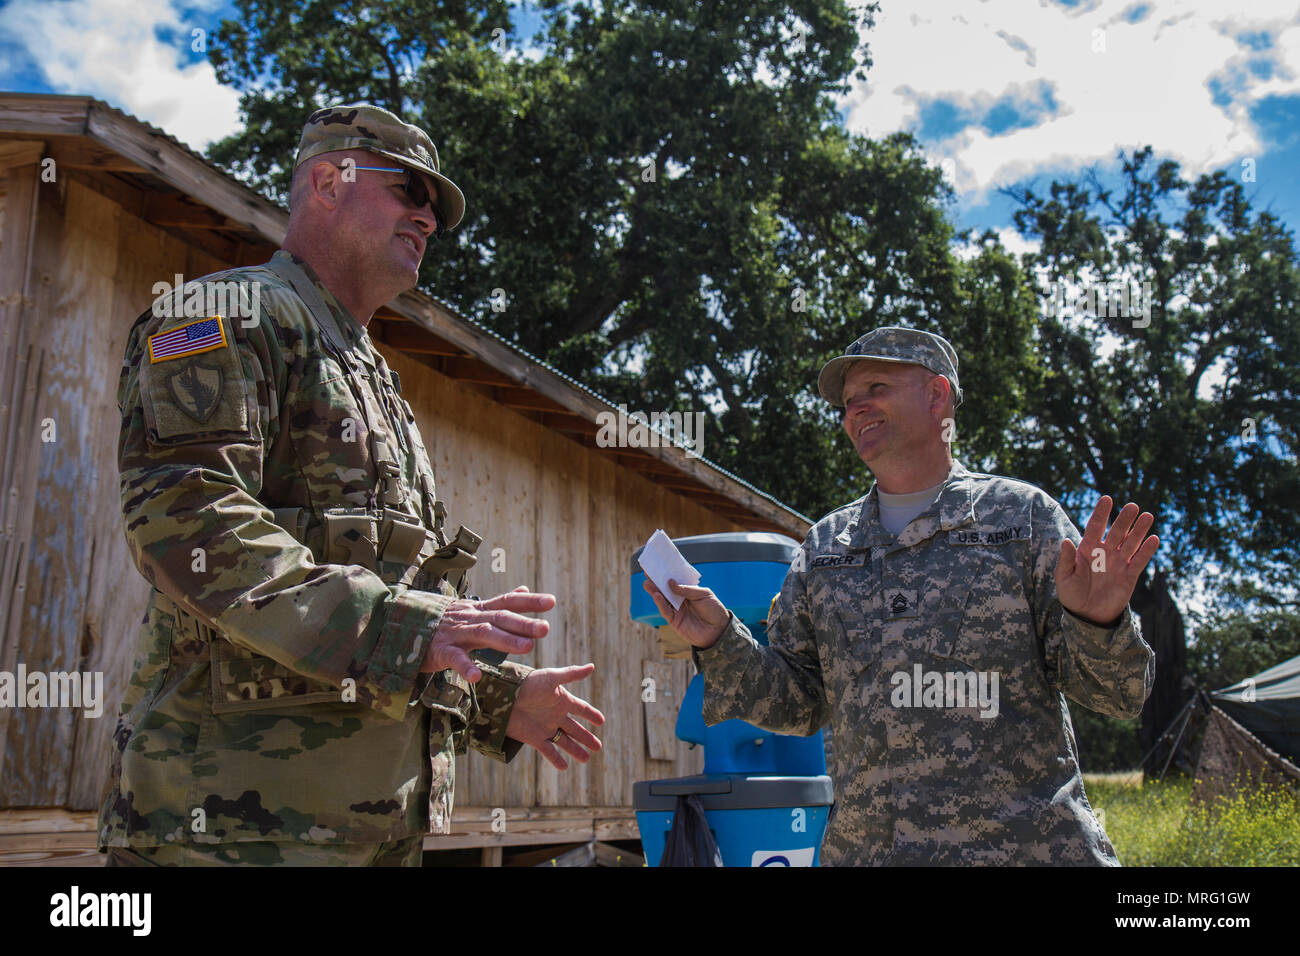 U.S. Army Master Sgt. Hugh Becker (right), 698th Quartermaster Co. from Nichols, New York, convenes with United States Army Reserve Command (USARC) Command Sgt. Maj. Ted Copeland on Tactical Assembly Area (TAA) Ward on Fort Hunter Liggett, Calif. on June 12, 2017. Becker is in charge of dining for TAA Ward and makes sure that all soldiers are fed while they are participating in the 91st Training Division's Warrior Exercise (WAREX) 91-17-03 at Fort Hunter Liggett, Calif. It is imperative that the soldiers engaging in the WAREX be kept well fed, so the exercise can produce combat ready forces. ( - Stock Image